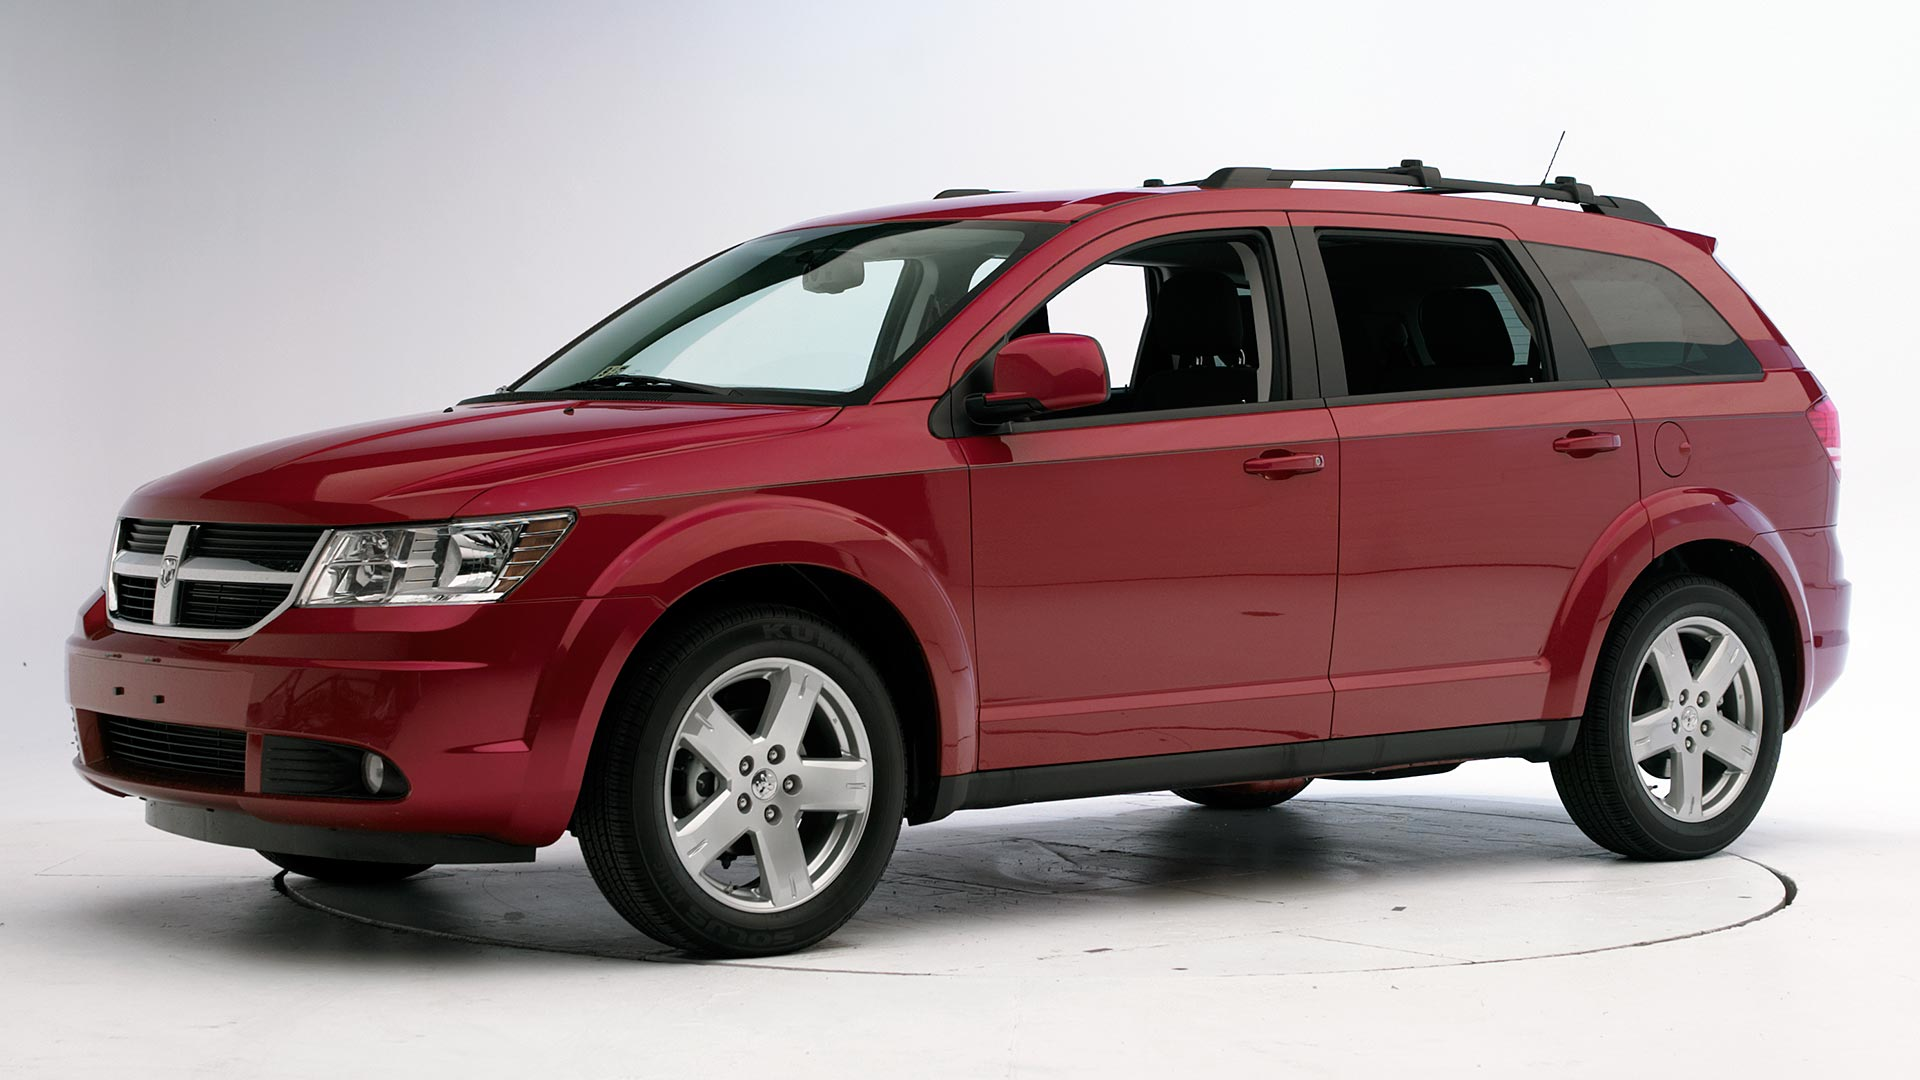 2012 Dodge Journey 4-door SUV